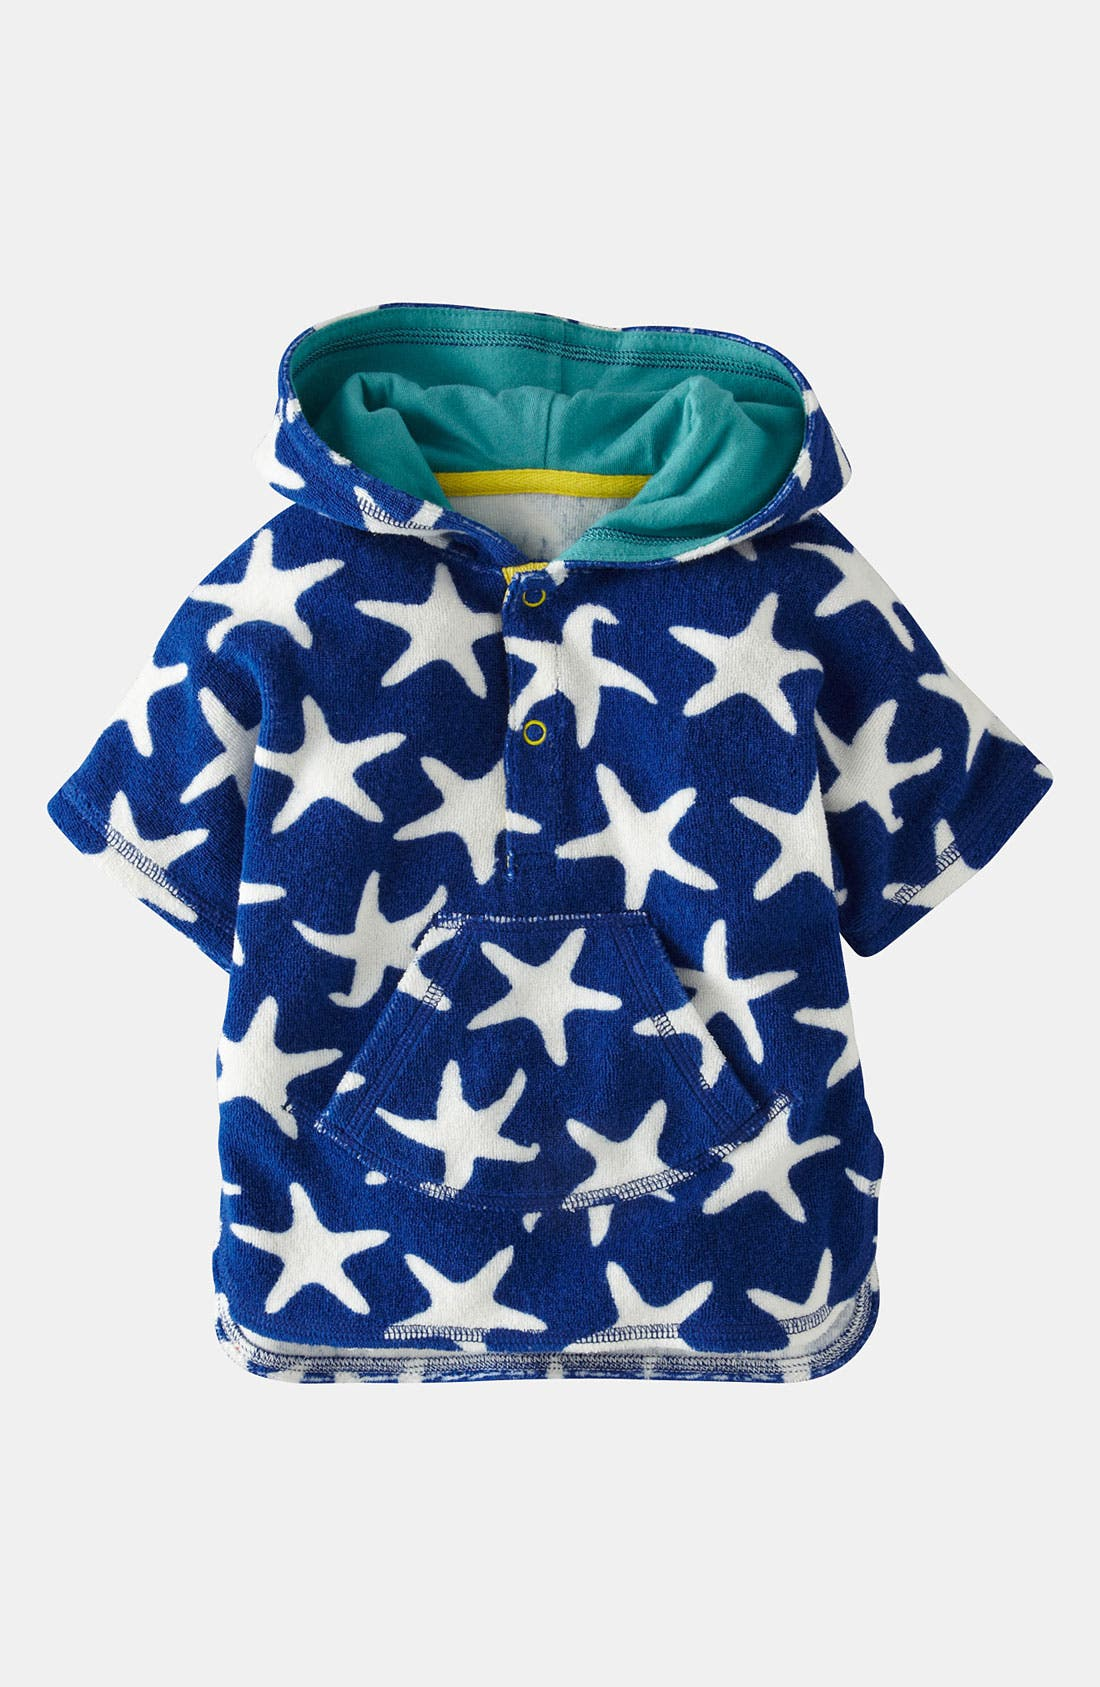 Main Image - Mini Boden 'Toweling' Poncho (Baby)